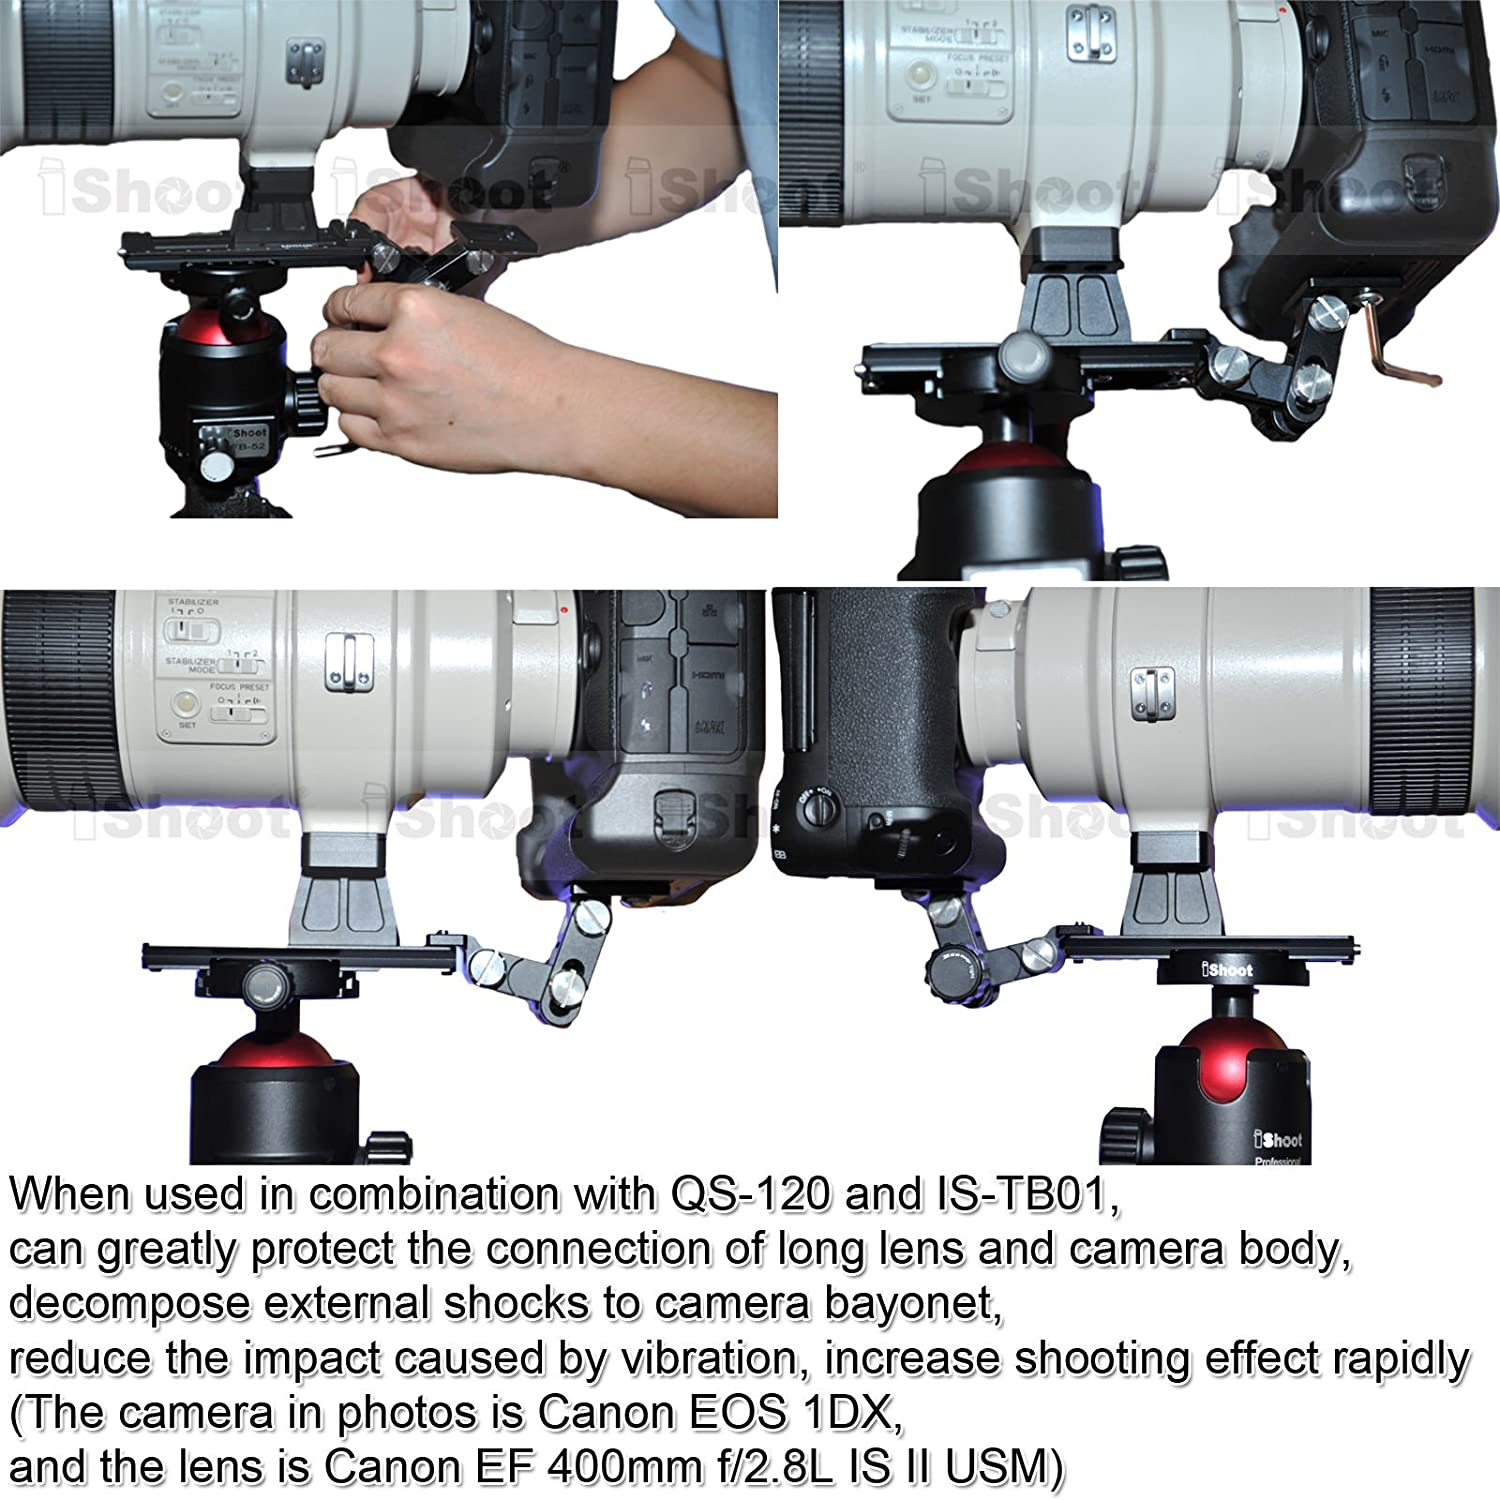 Telephoto Lens Bracket for Canon EF 800mm f//5.6L IS USM EF 200-400mm f//4L IS USM EXTENDER 1.4X Camera Quick Release Plate iShoot Lens Support Collar Foot Tripod Mount Ring Stand Base